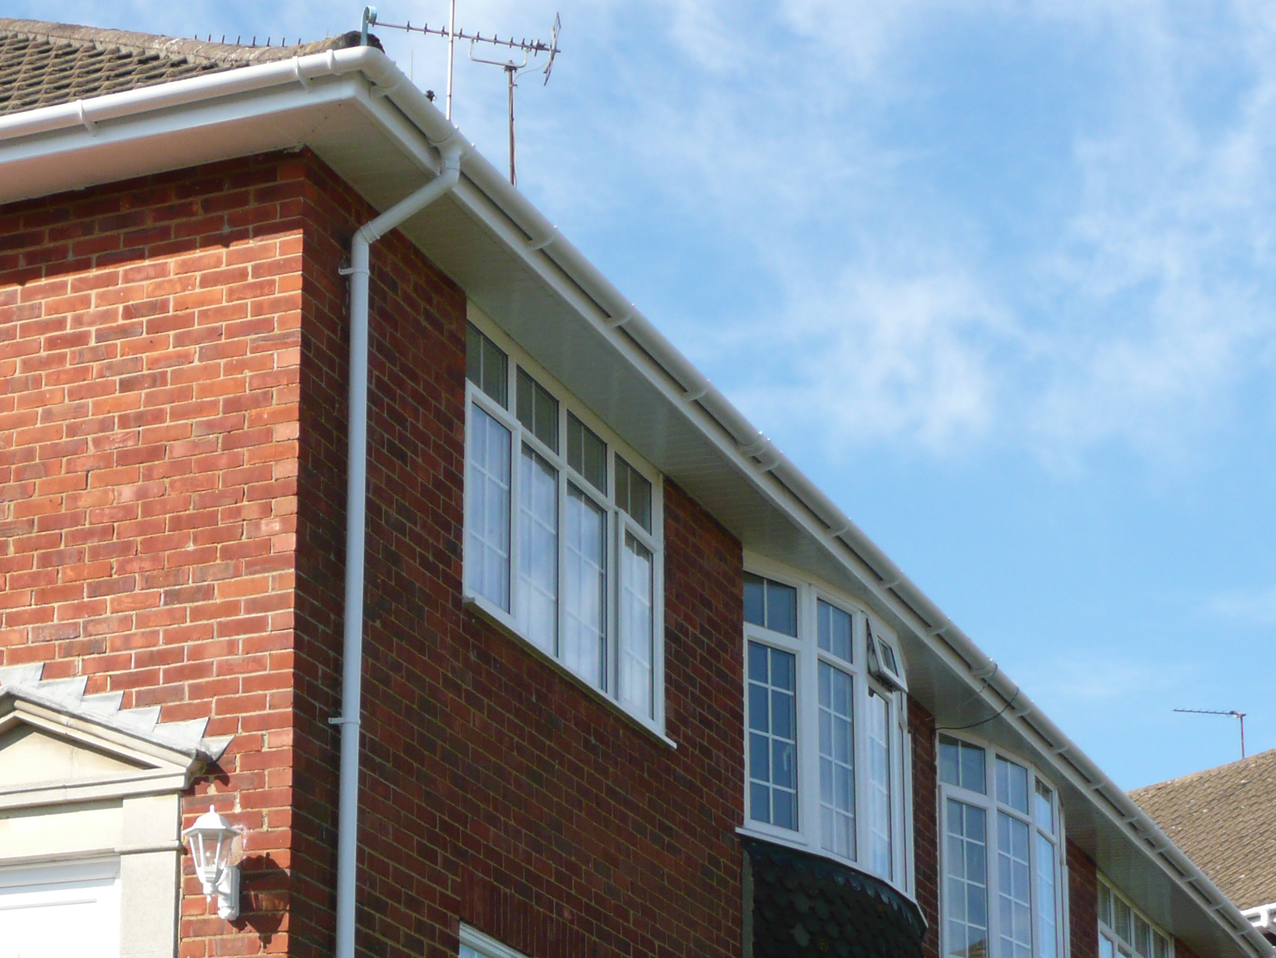 roofline replacement, fascias, soffits and guttering